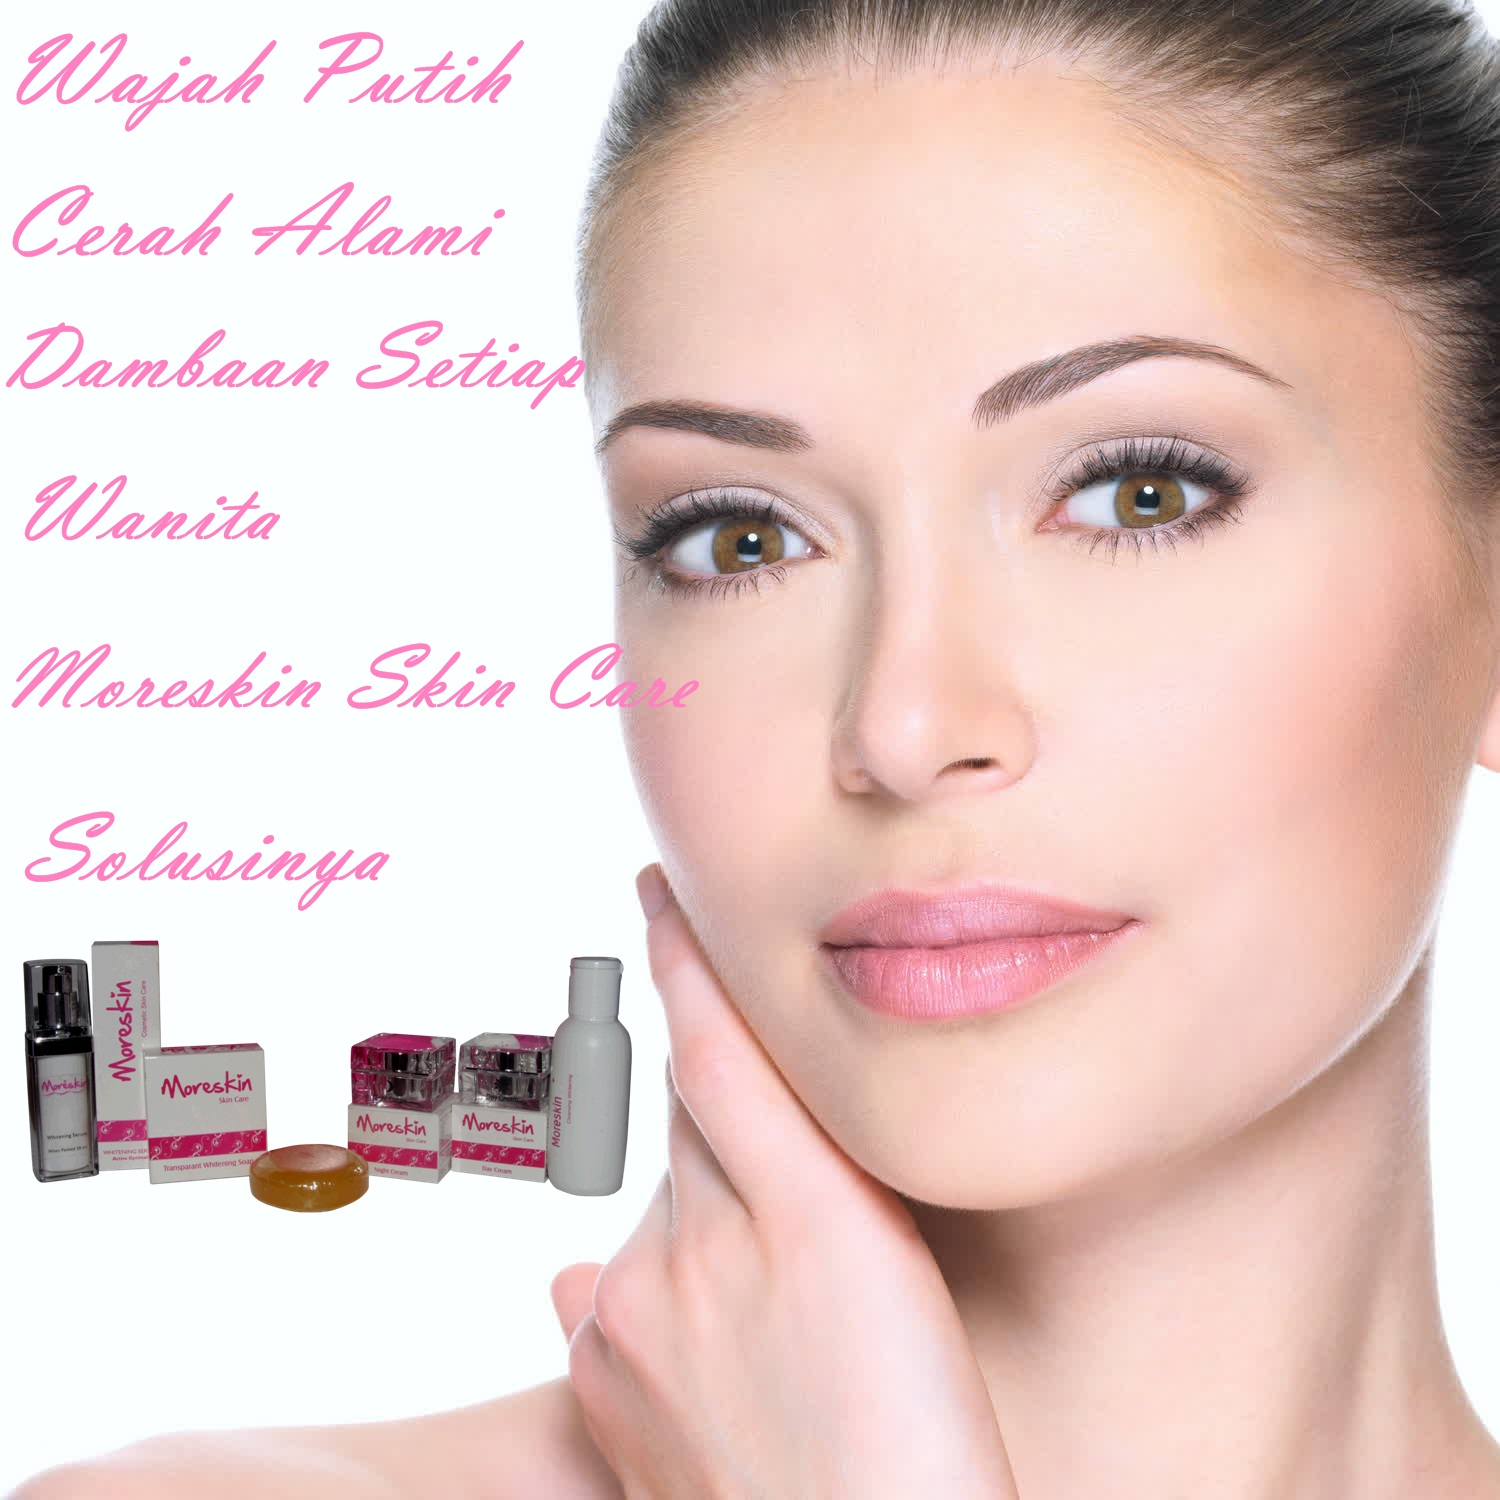 Moreskin Skin Care